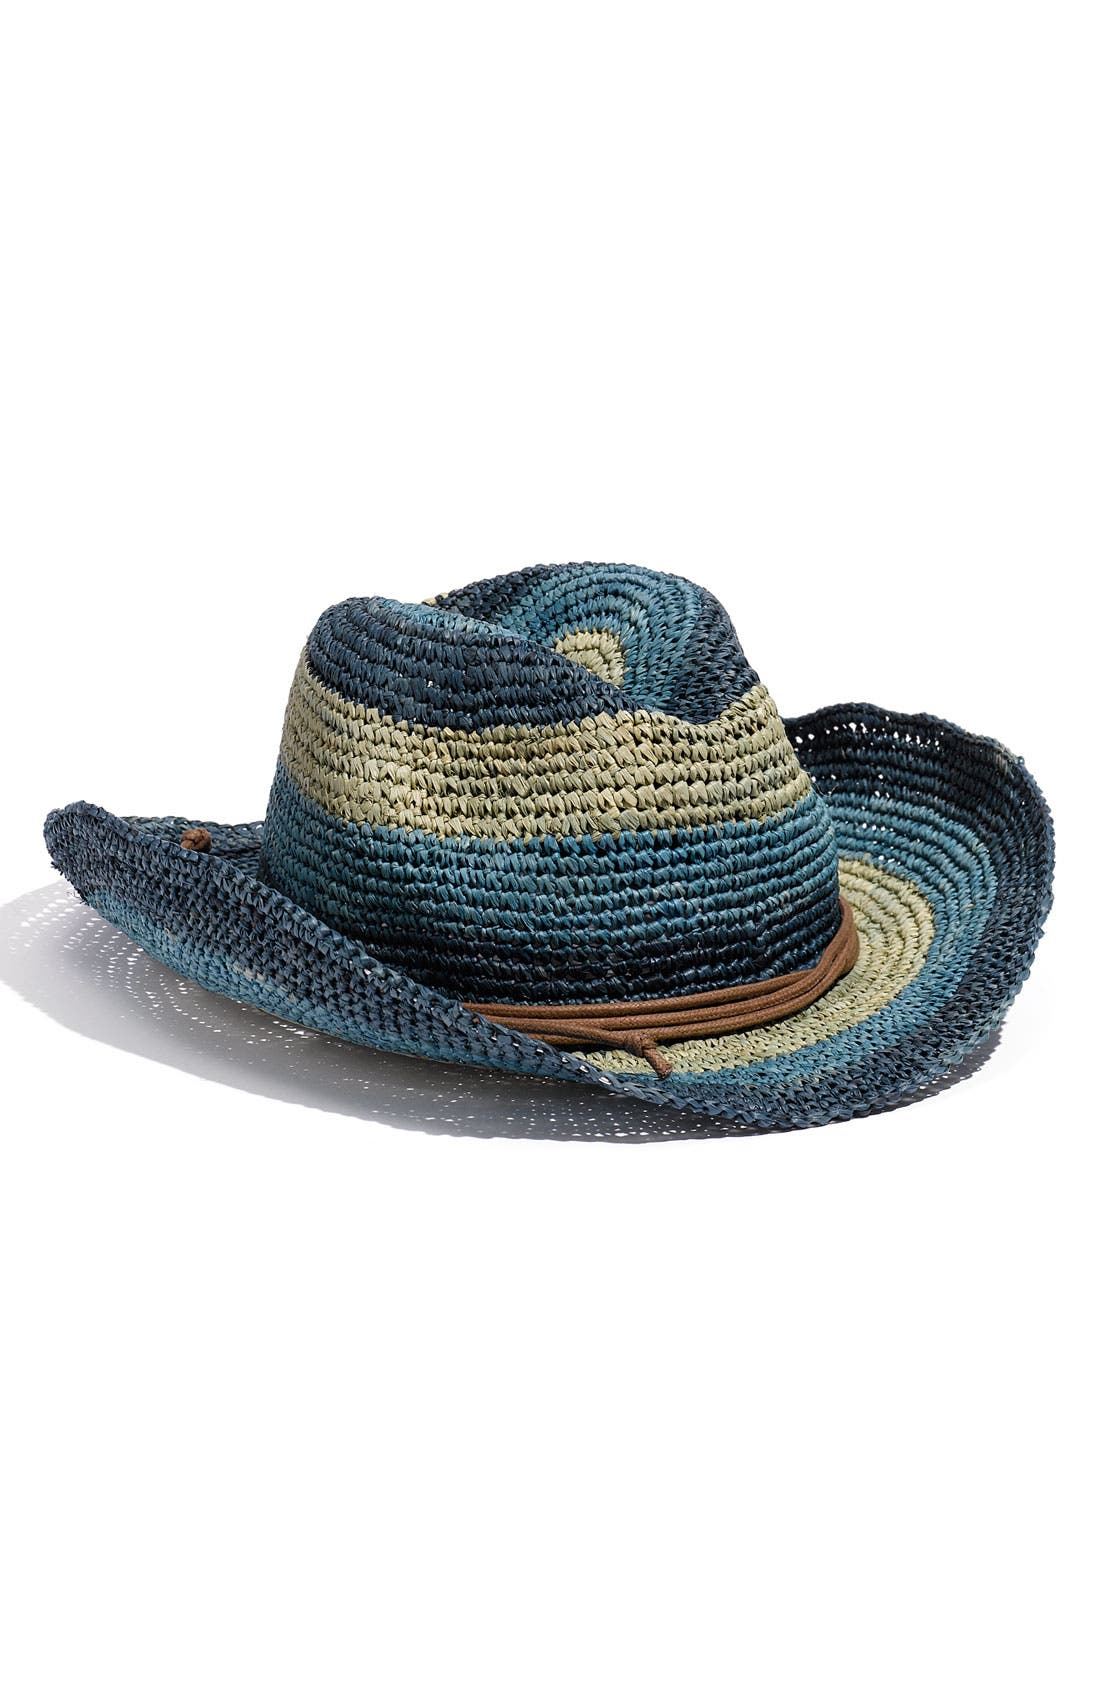 Alternate Image 1 Selected - Tarnish Stripe Cowboy Hat